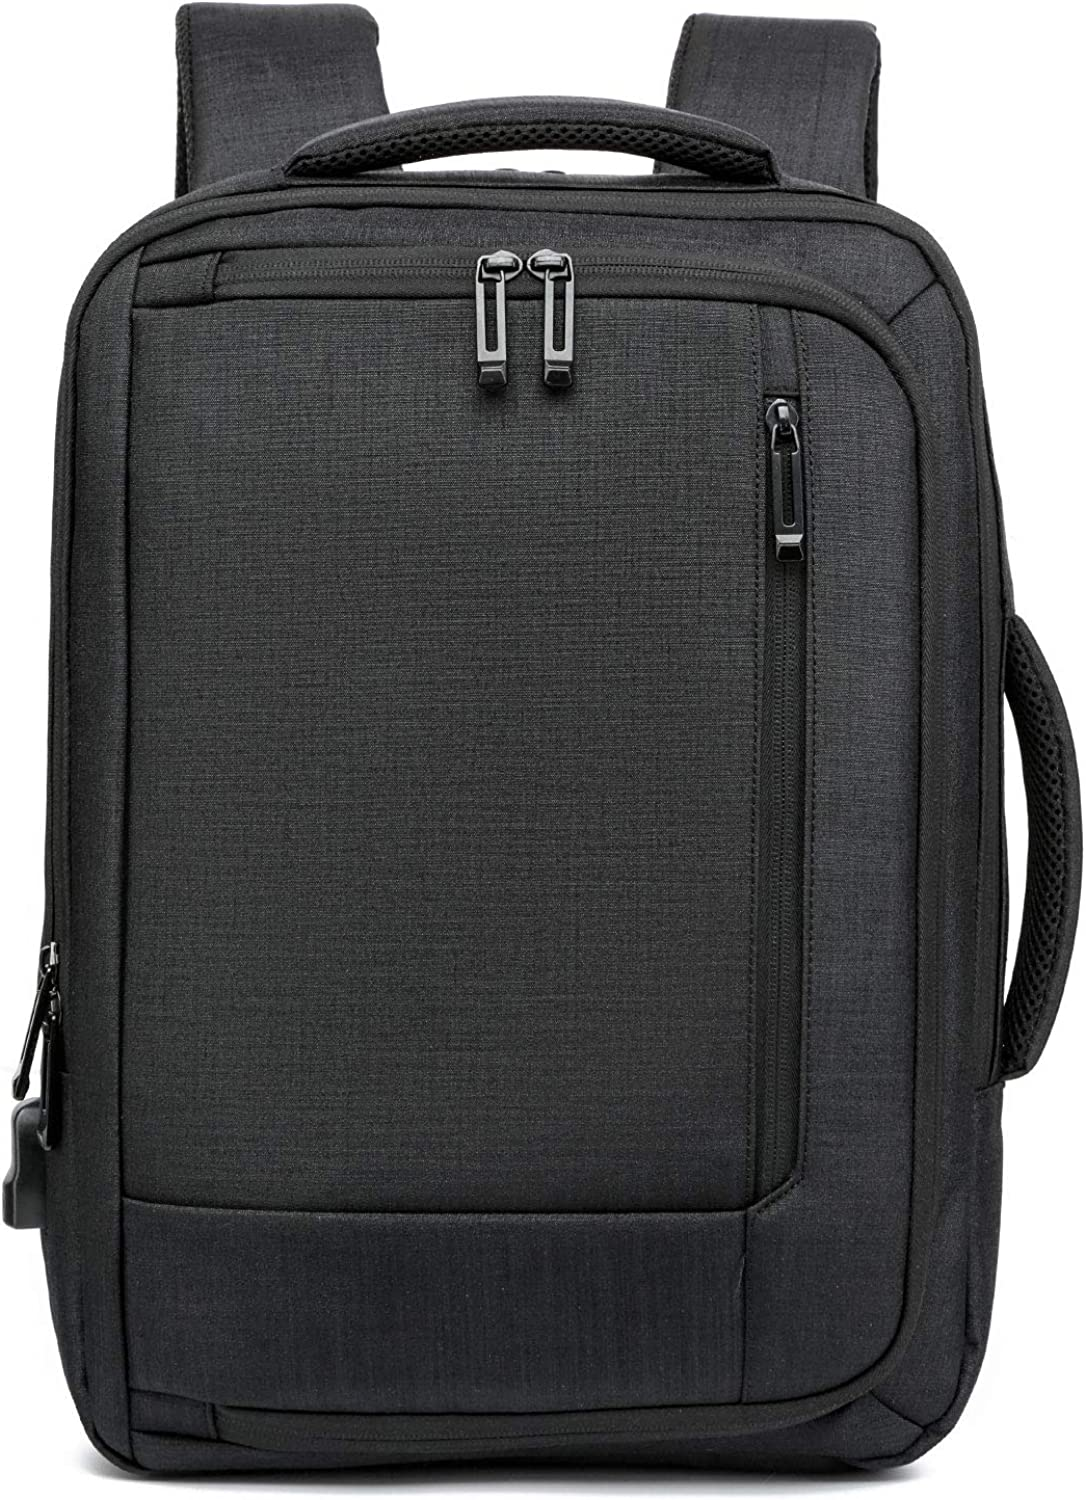 Travel Business Laptop Backpack for Men and Women,Large Laptop Bag with USB Charging Port Lock,Lightweight College School Computer Bag Fits 17.3 inch Notebook,Black